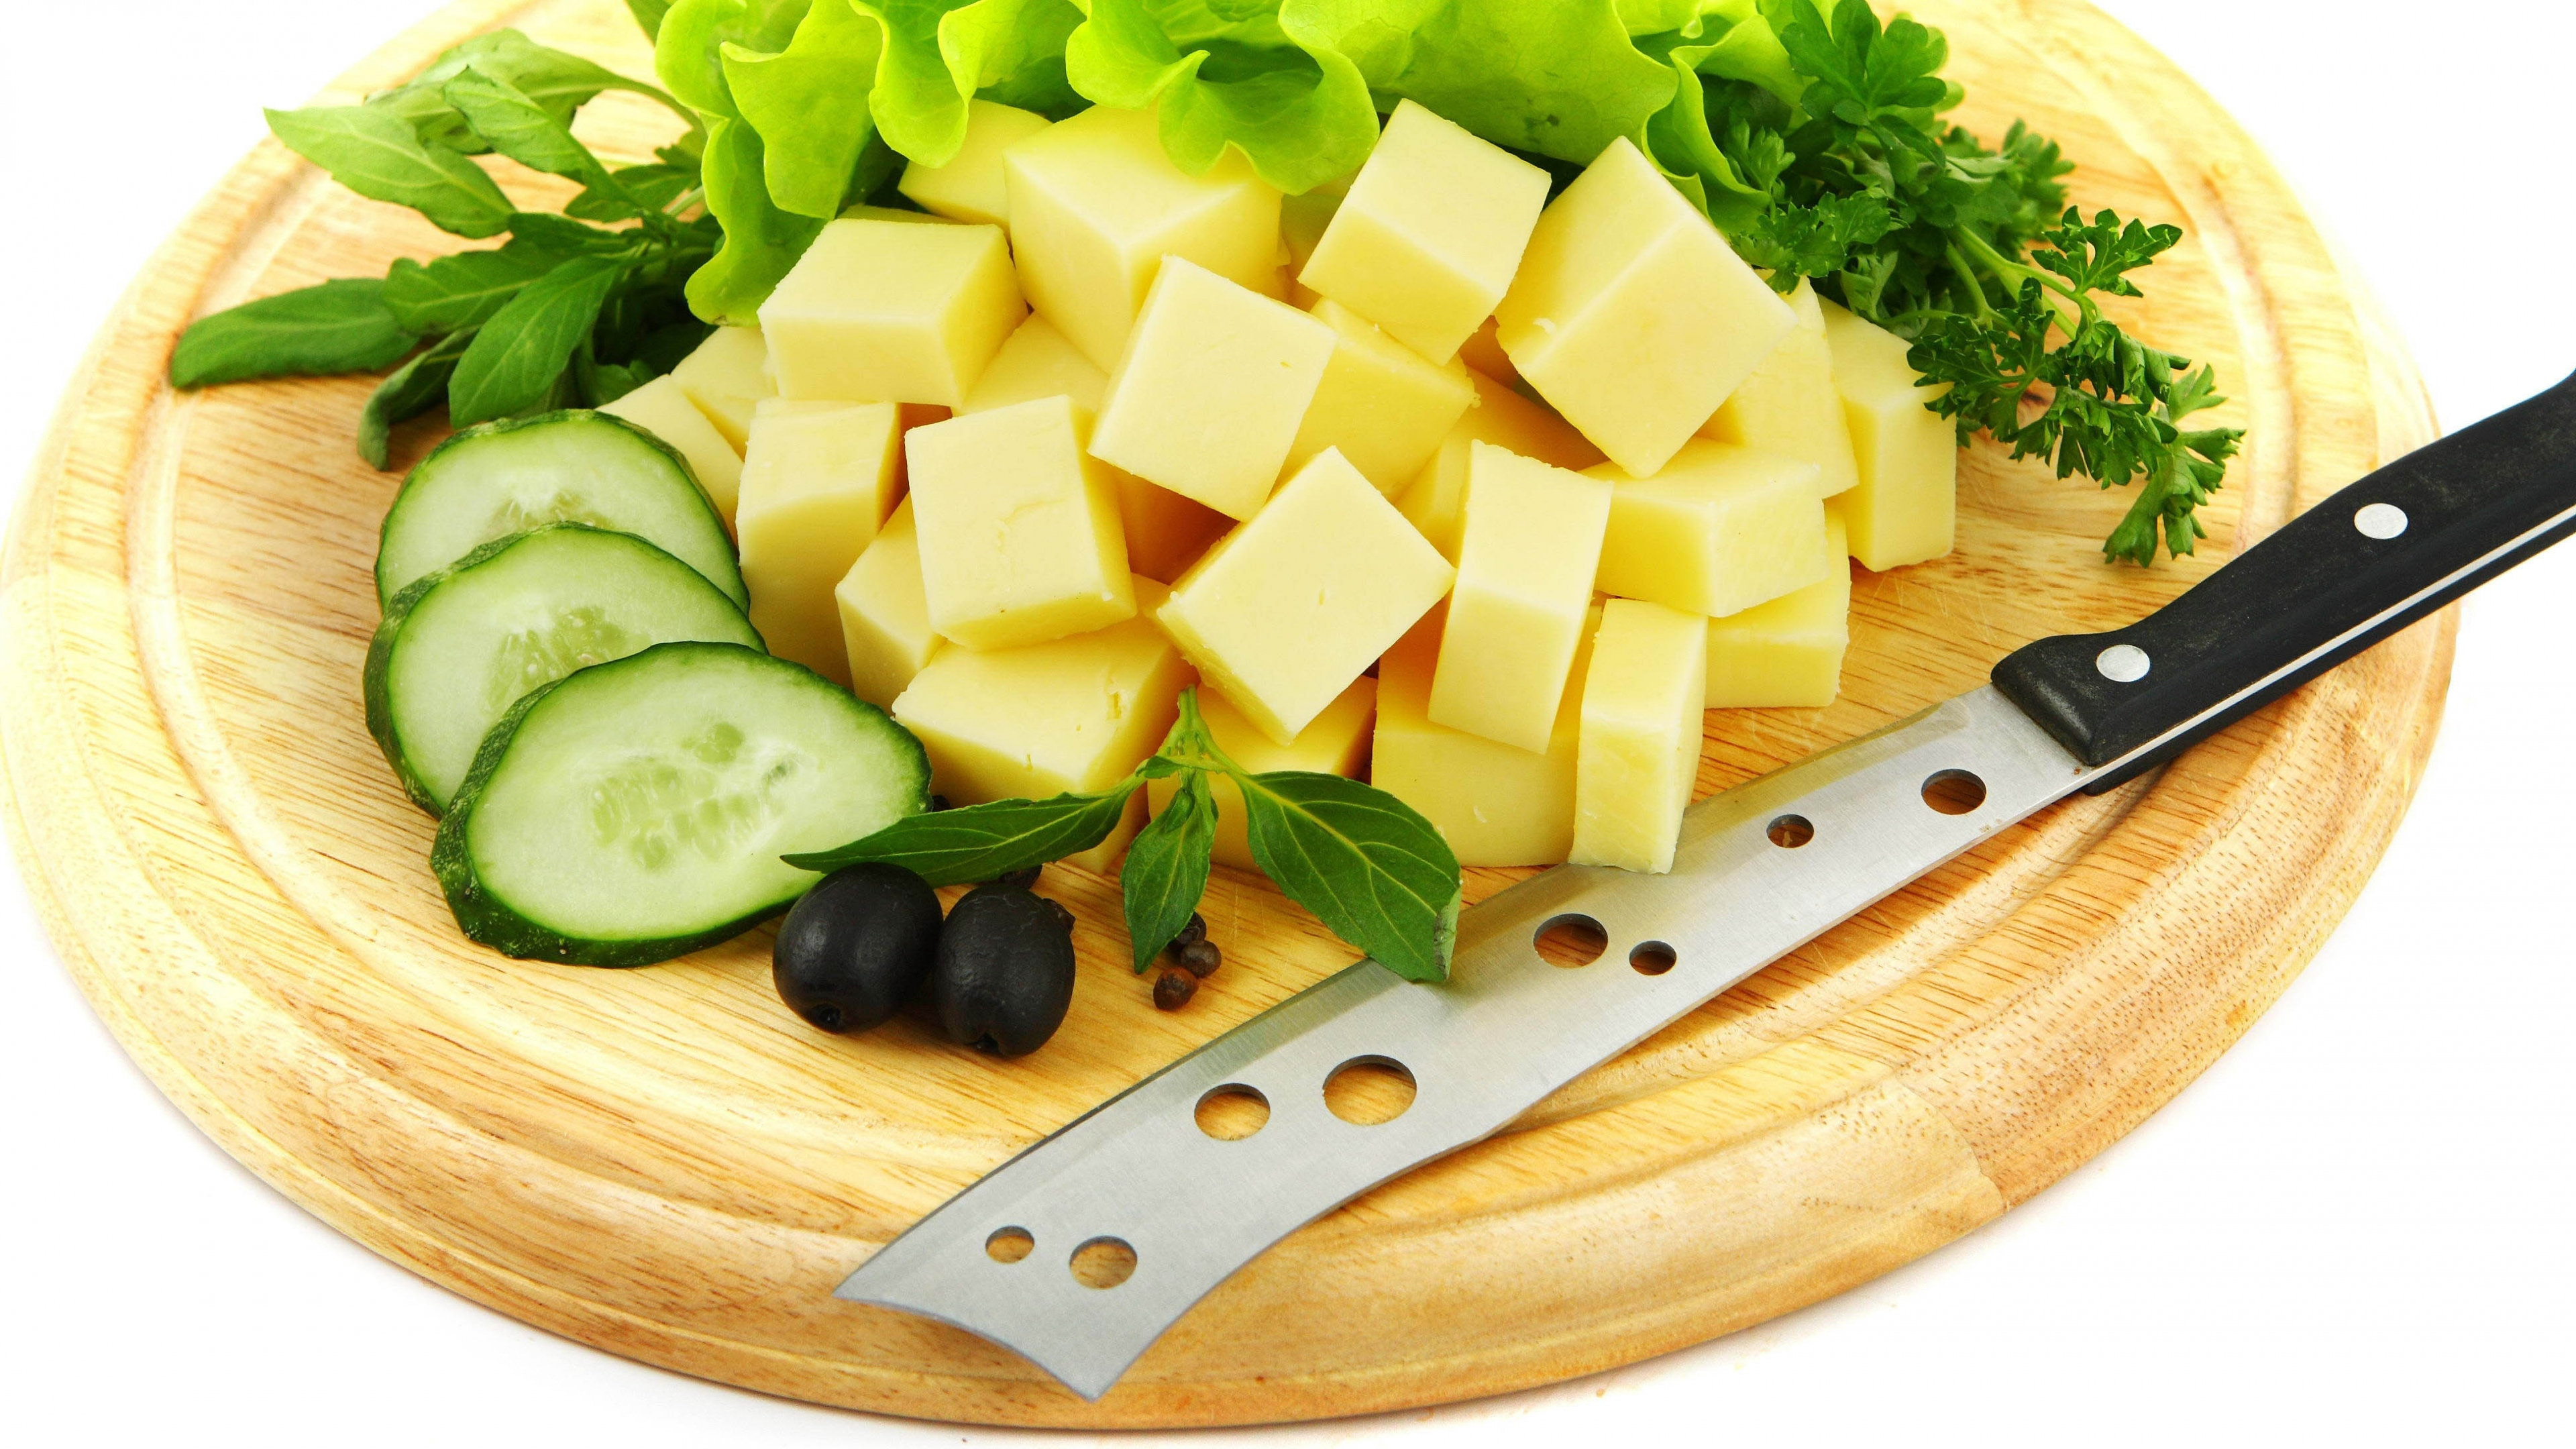 General 3840x2160 cheese cucumbers food knife